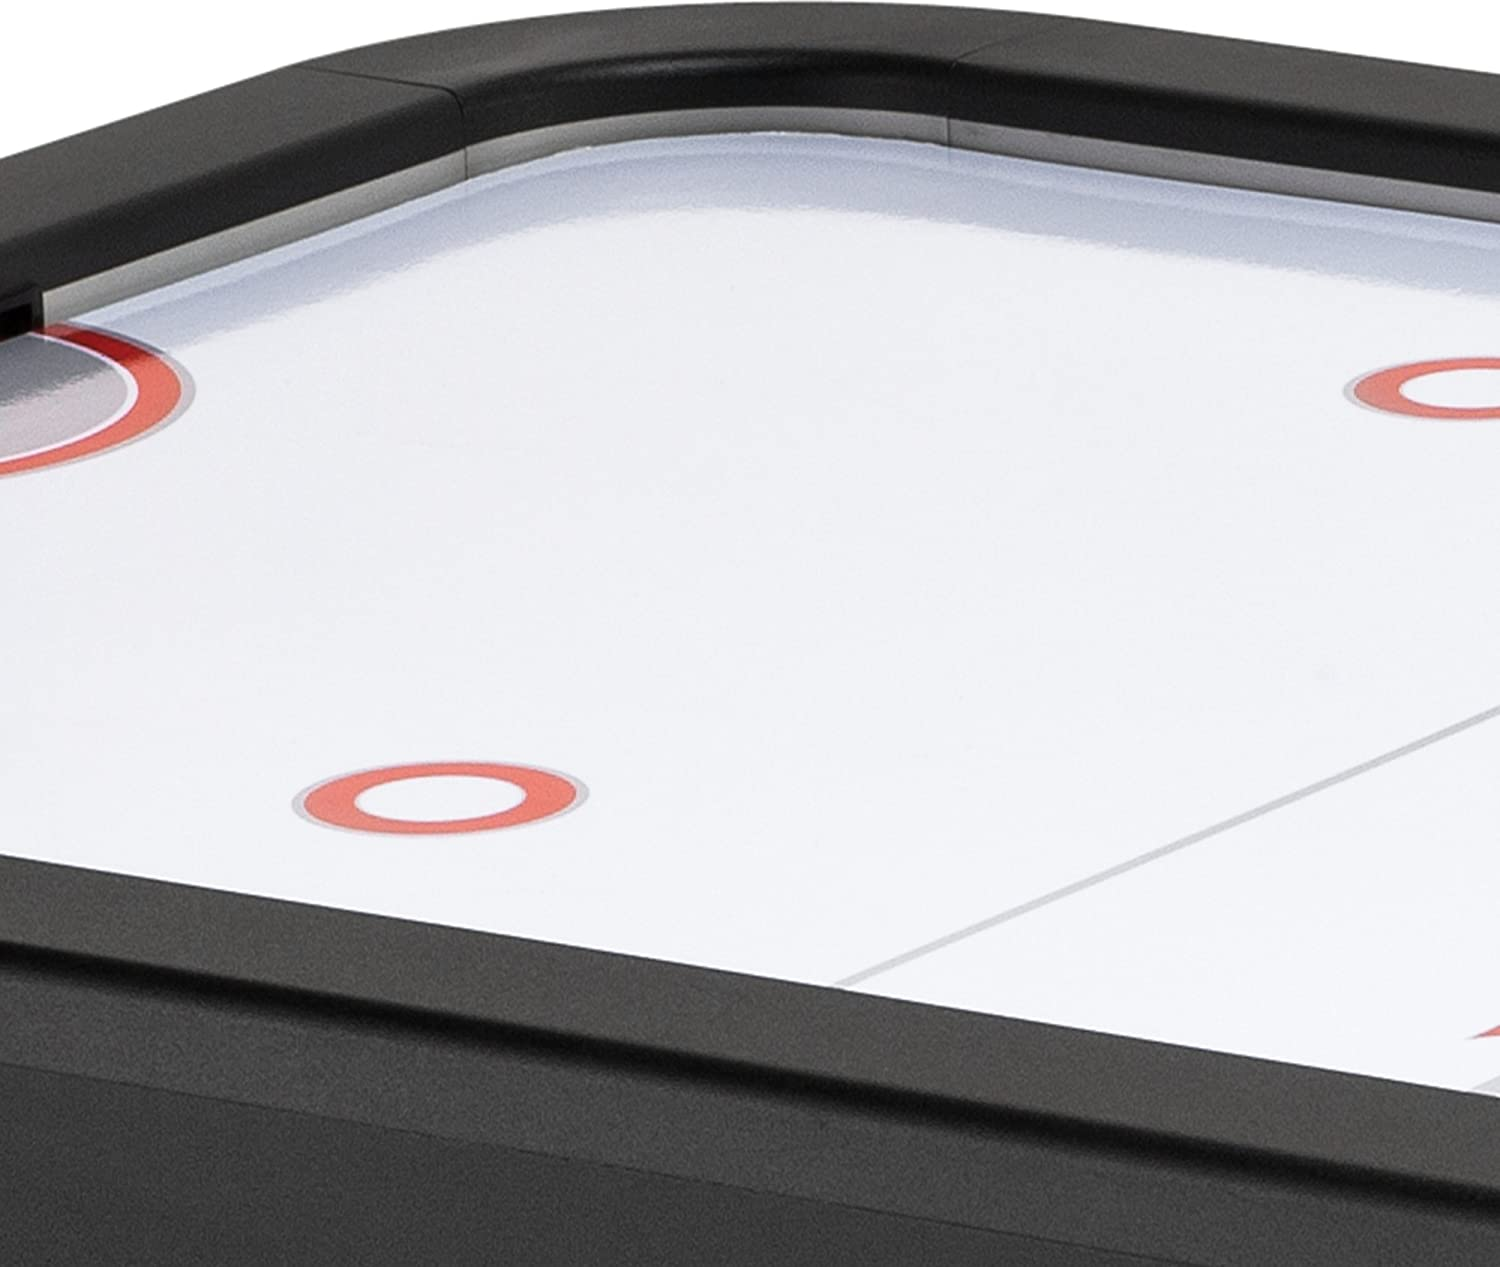 Viper vancouver 75 foot air hockey game table air hockey viper vancouver 75 foot air hockey game table air hockey amazon canada greentooth Image collections